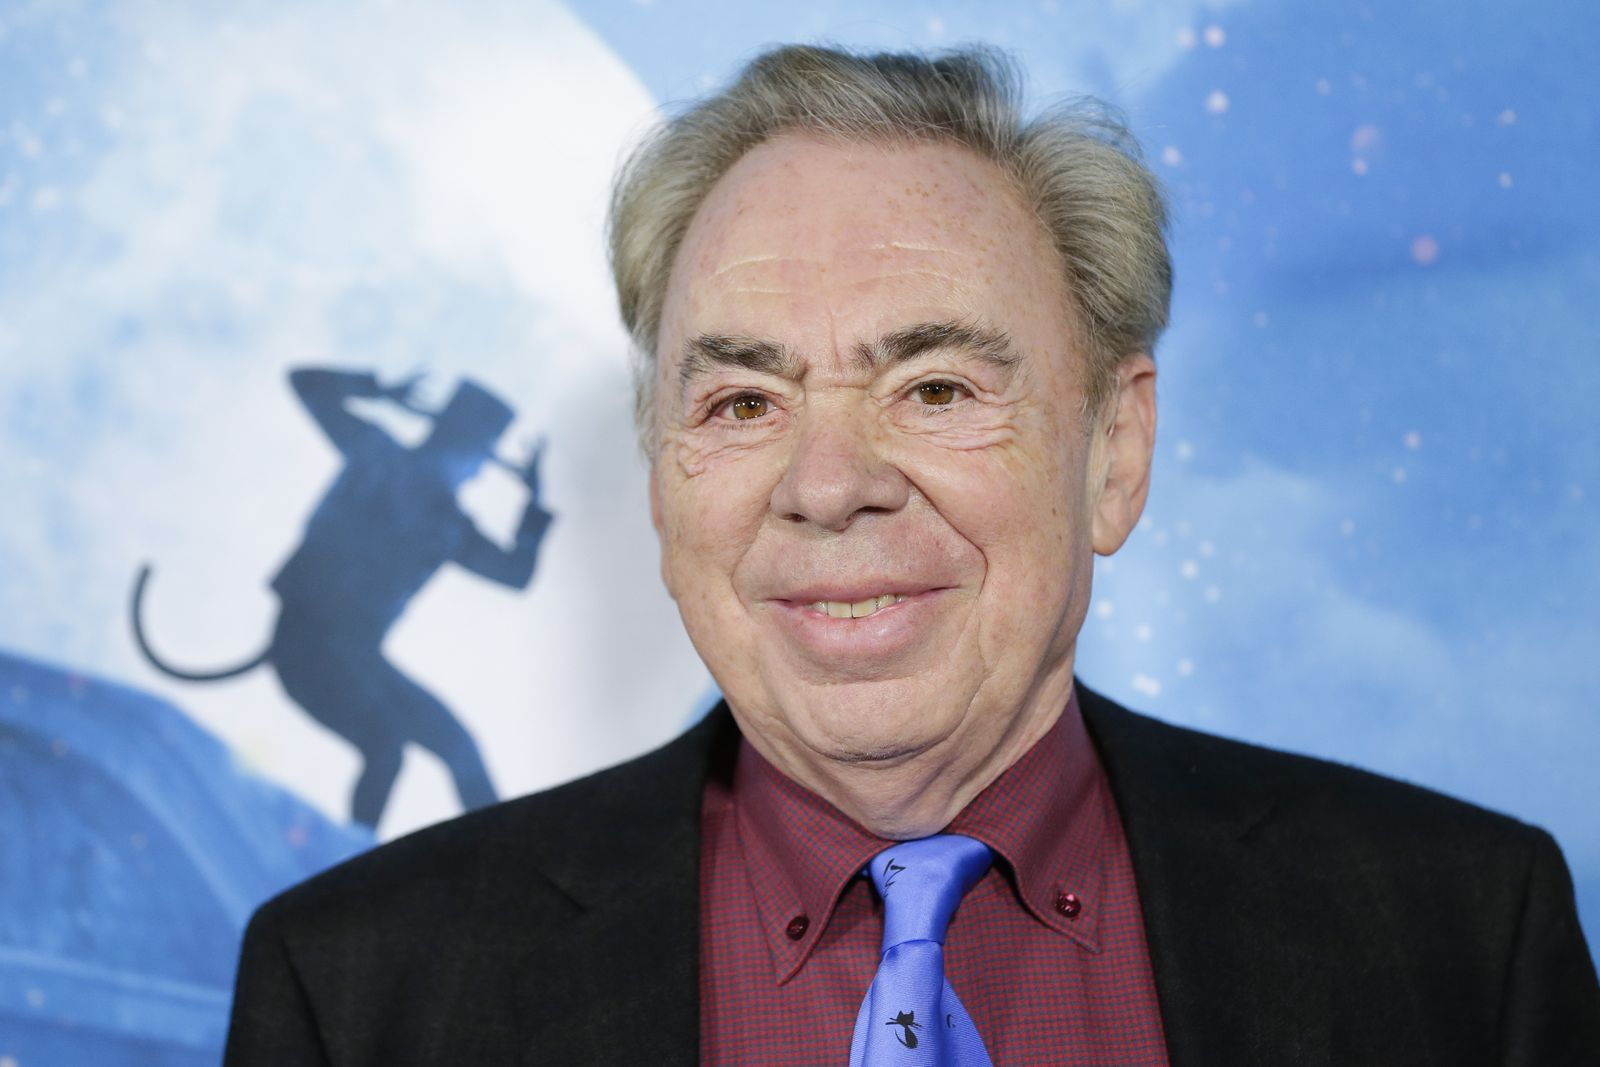 Andrew Lloyd Webber arrives on the red carpet at the world premiere of Cats at Alice Tully Hall, Lincoln Center on Monda